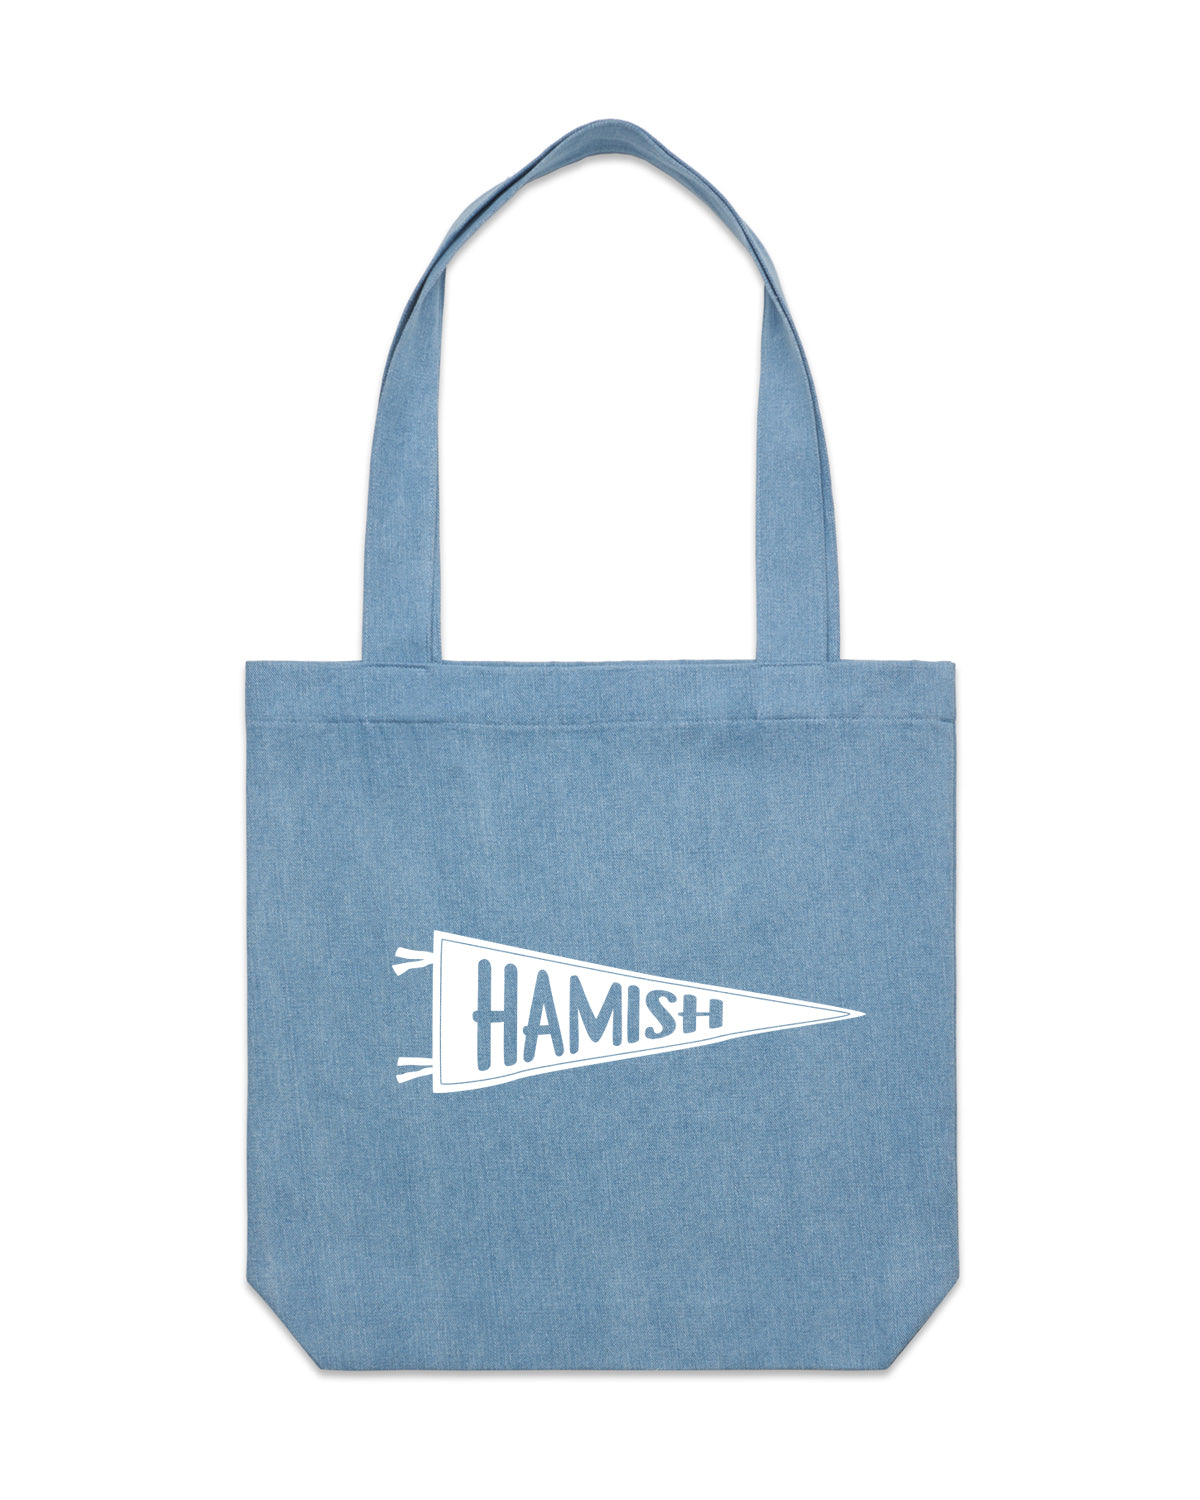 Pennant Flag Name | Denim Tote - Personalised Clothing | EAST ON 18th